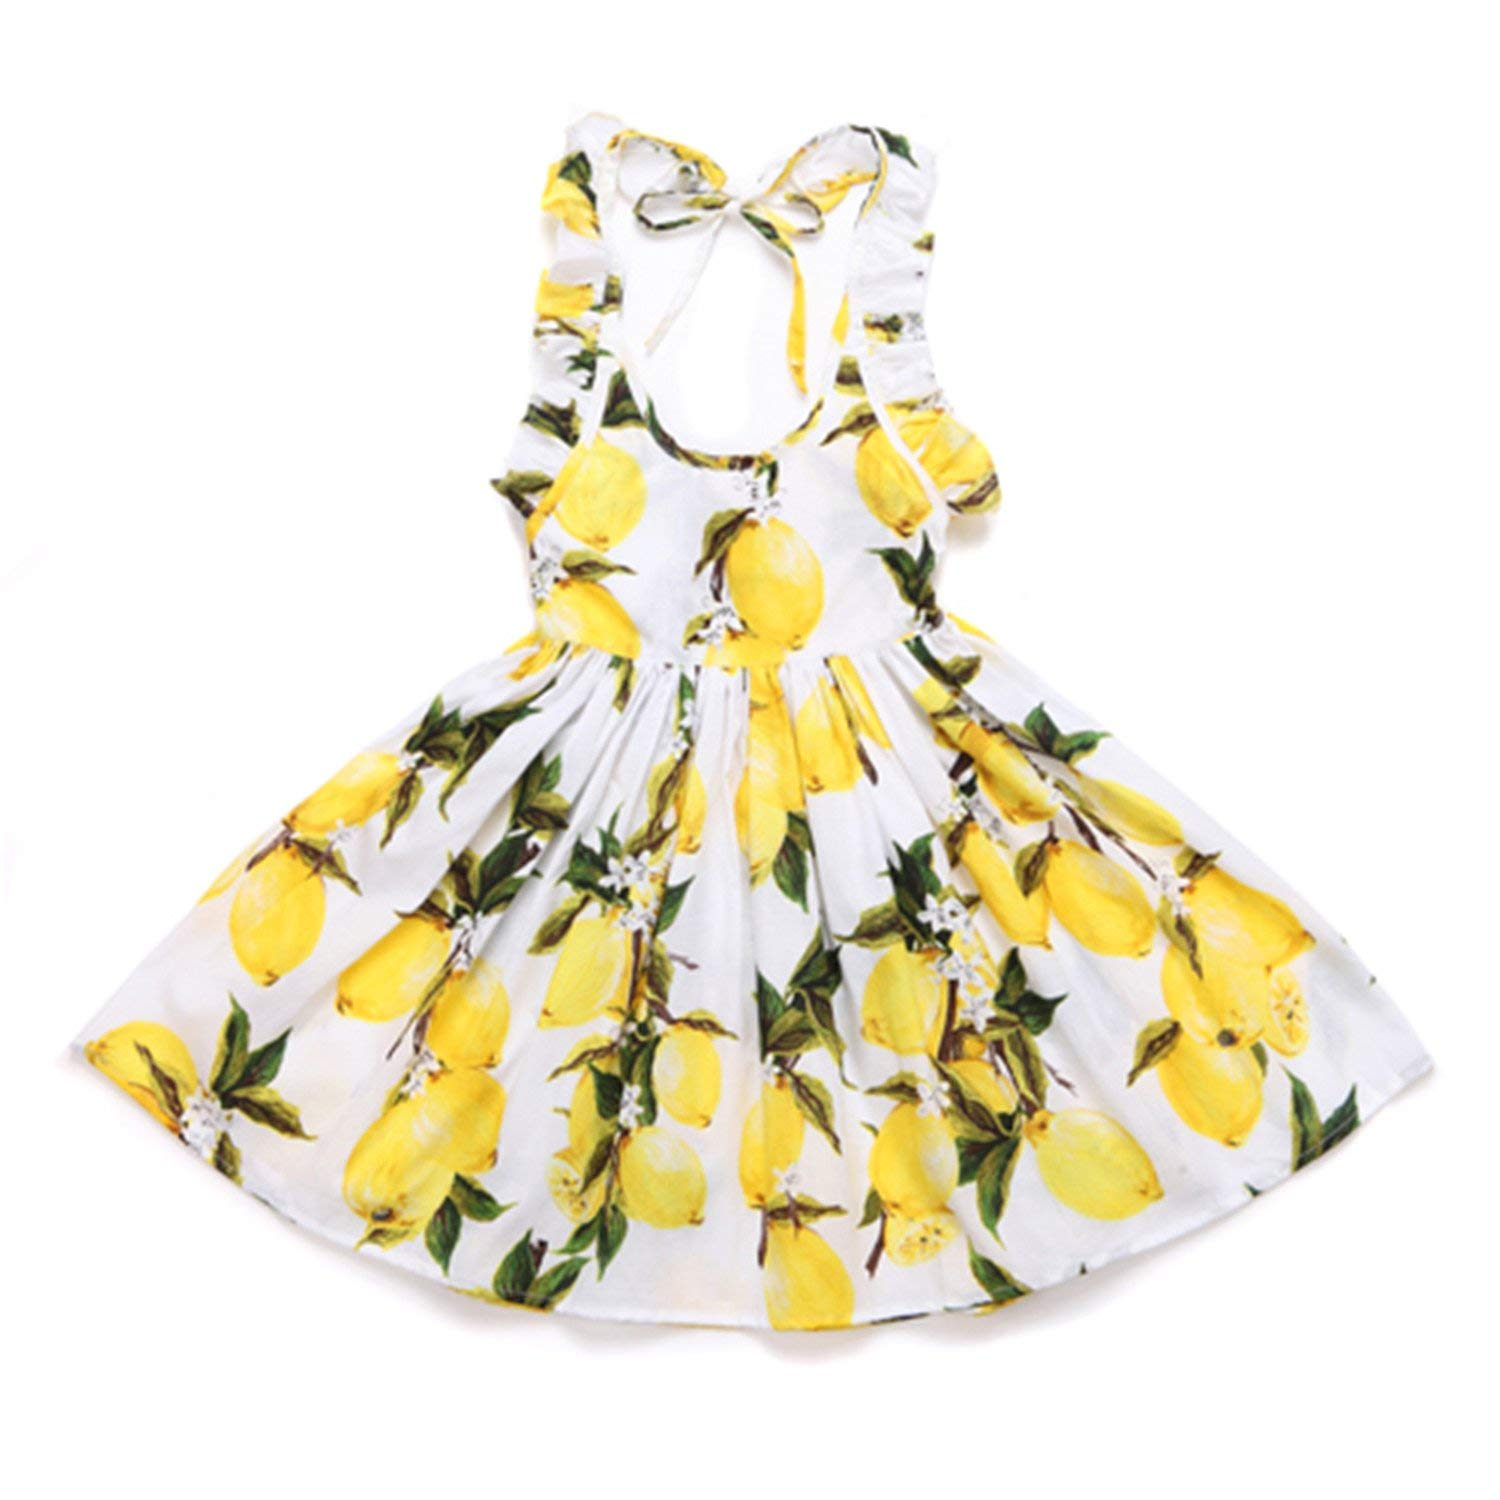 Wanyesta Baby Girls Dress Summer Beach Style Floral Print Party Backless Dresses Vintage Toddler Girl Clothing 1-9Yrs